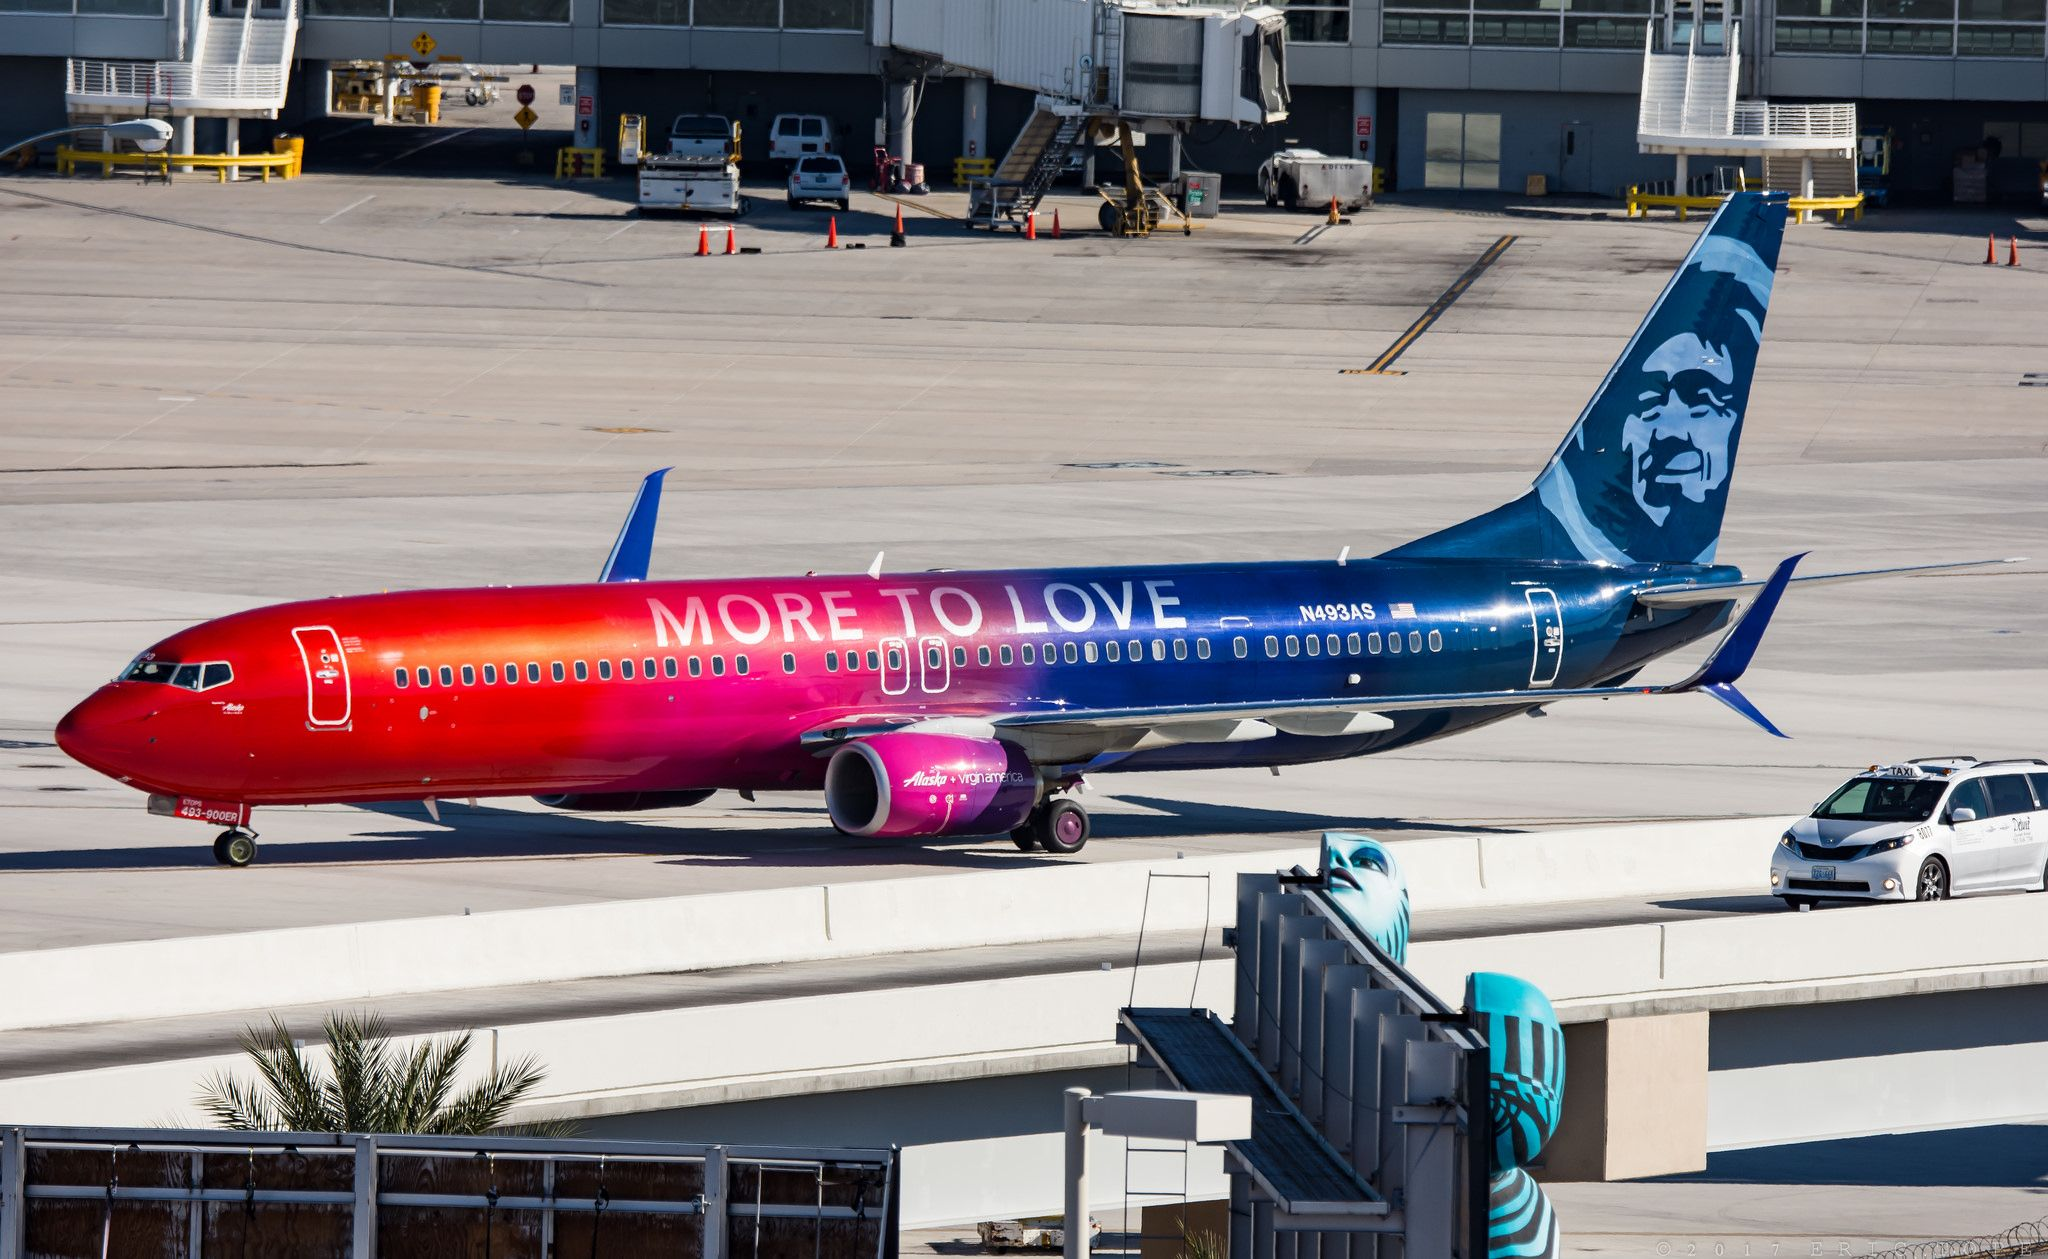 Alaska (More to Love Livery) - Boeing 737-990ER - N493AS | Favorite